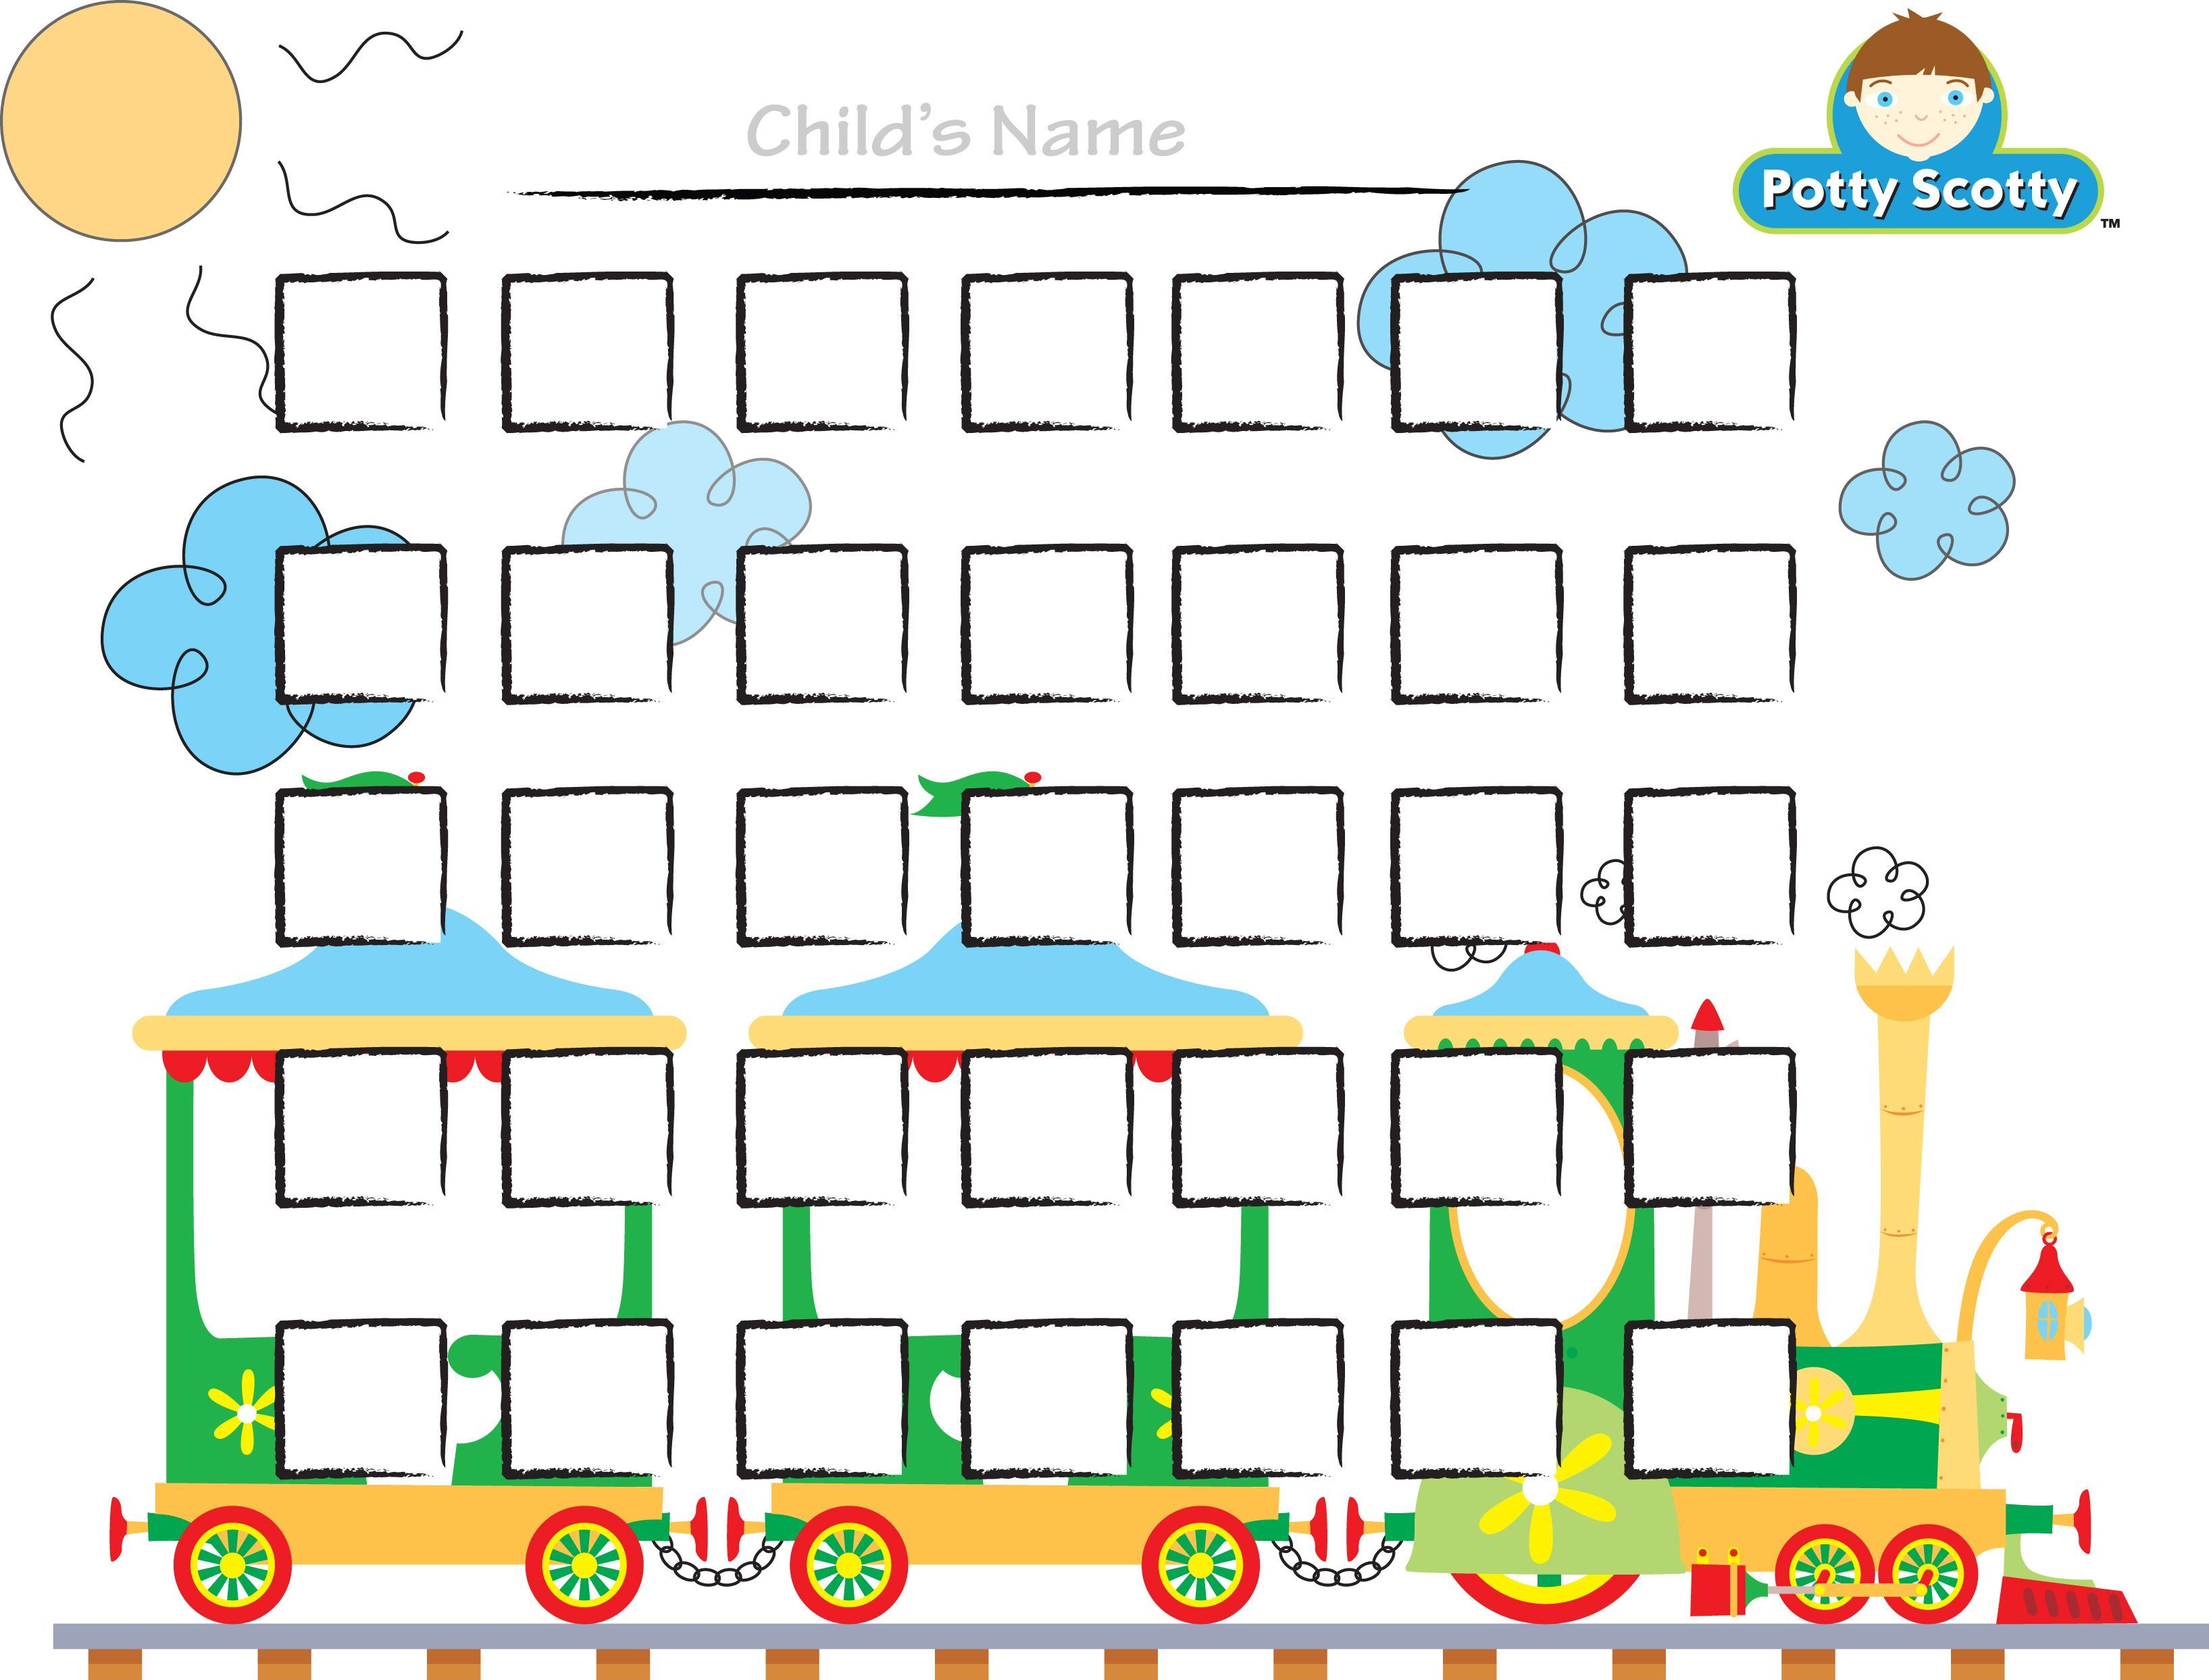 Potty Training Choo Choo Chart  Potty Training